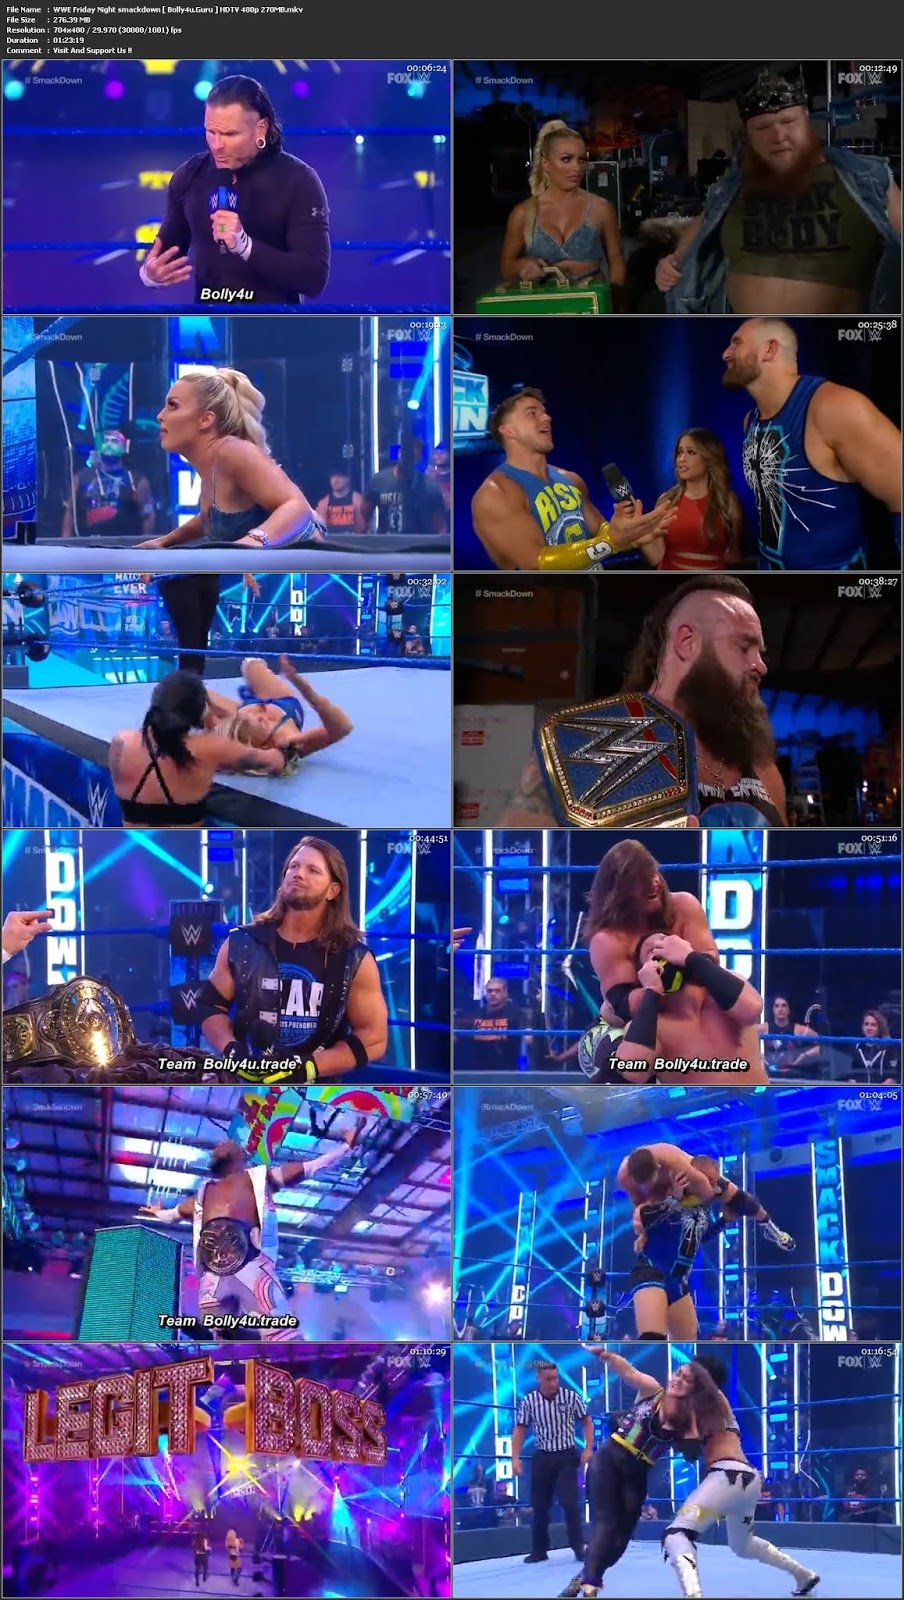 WWE Friday Night Smackdown HDTV 270Mb 480p 05 June 2020 Download